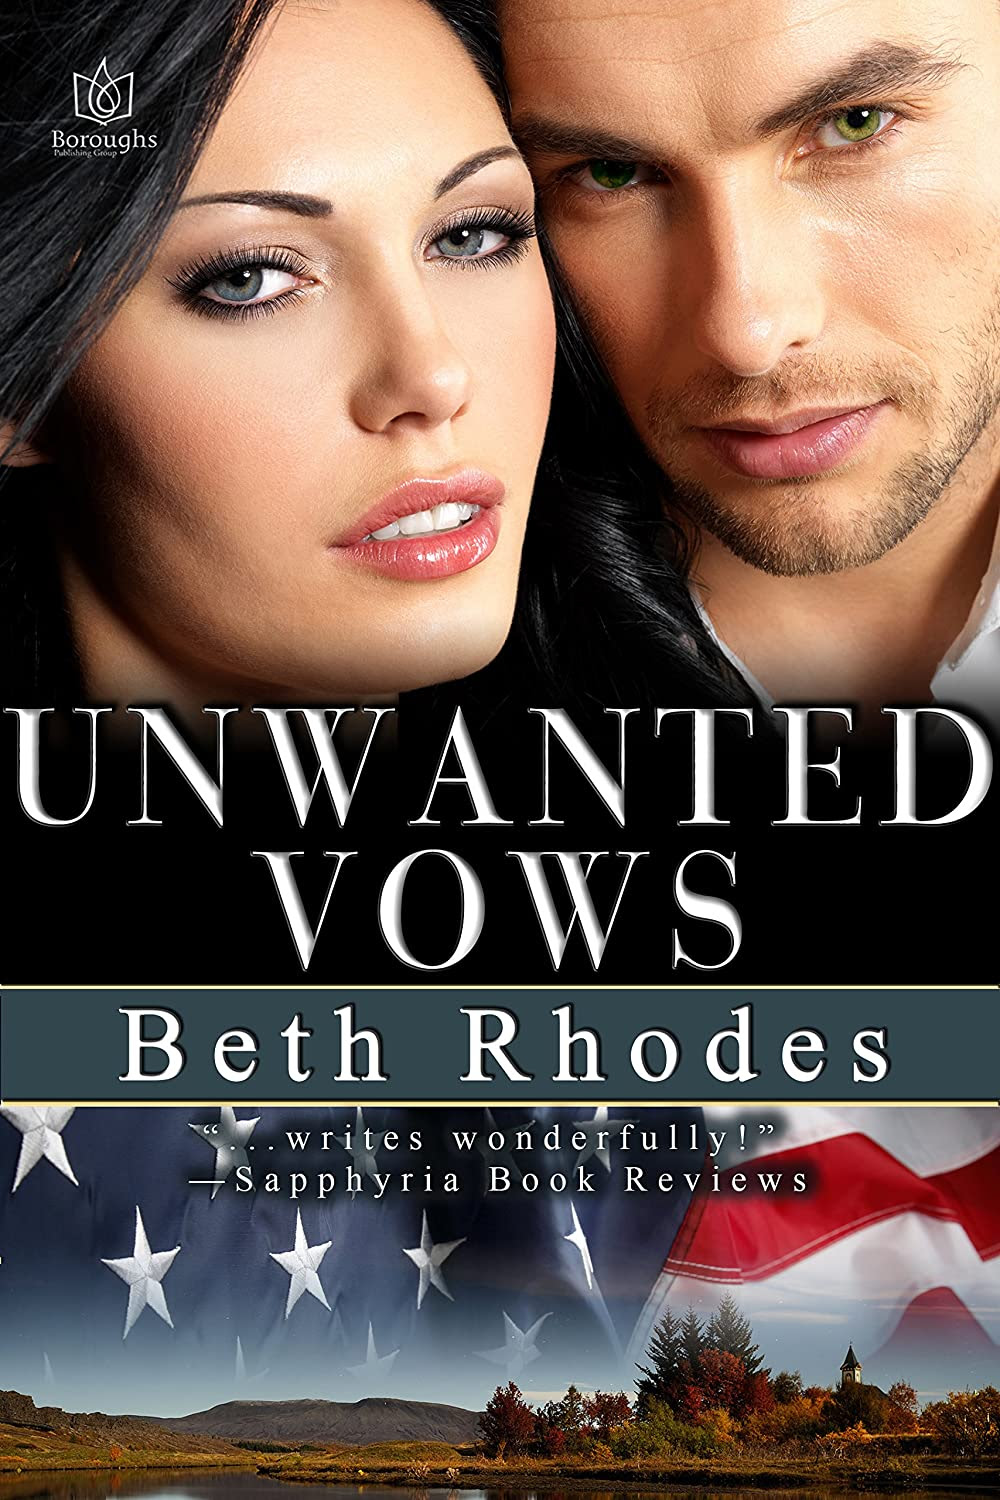 Cover image of Beth Rhodes new book, Unwanted Vows - Image source: http://ecx.images-amazon.com/images/I/91gJBIU1paL._SL1500_.jpg